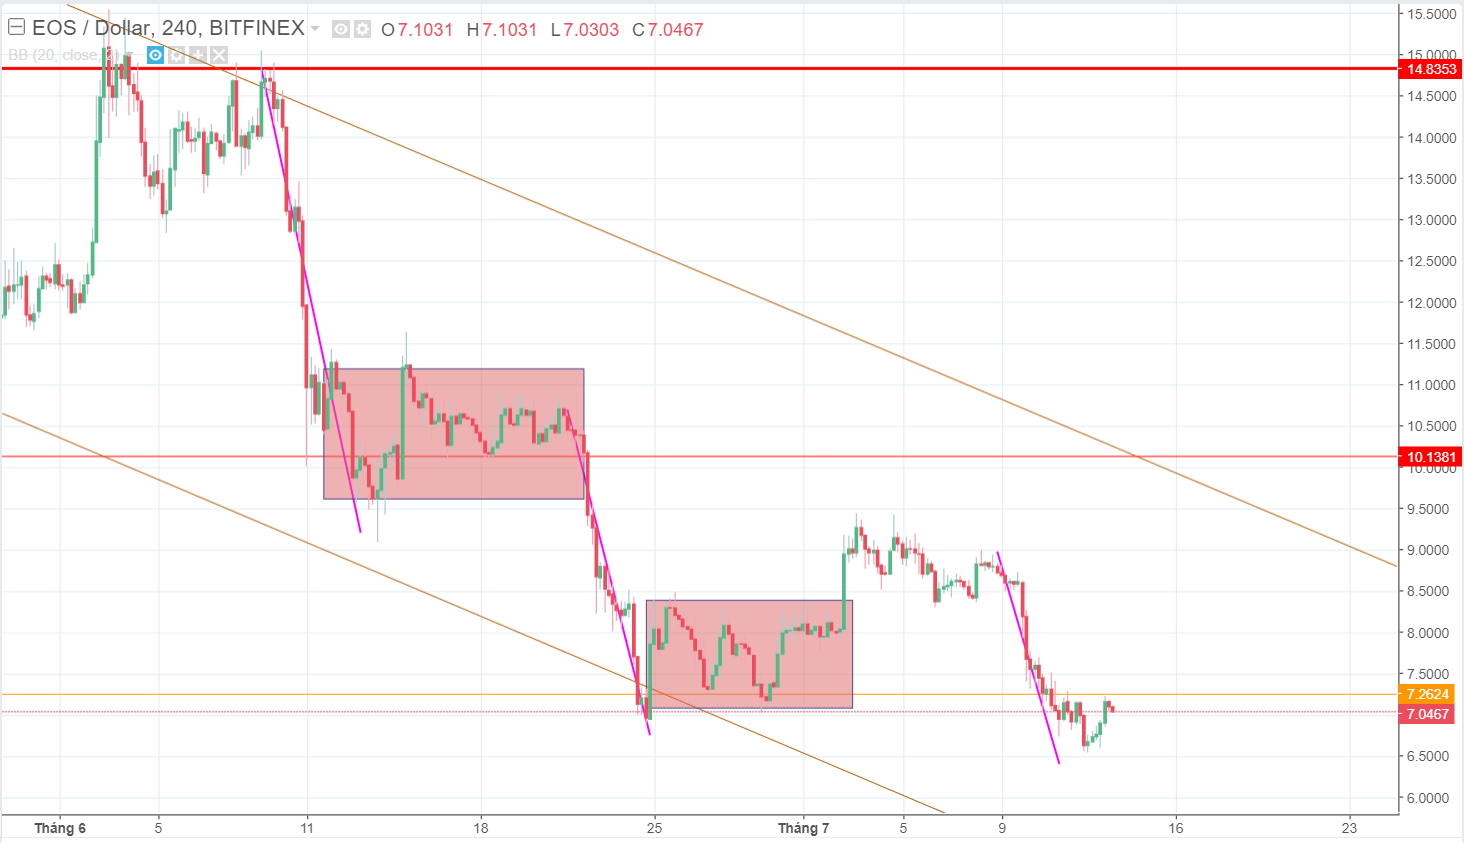 EOS price, EOS price analysis, EOS price forecast, USD, cryptocurrency, major cryptocurrencies, top 10 cryptocurrencies